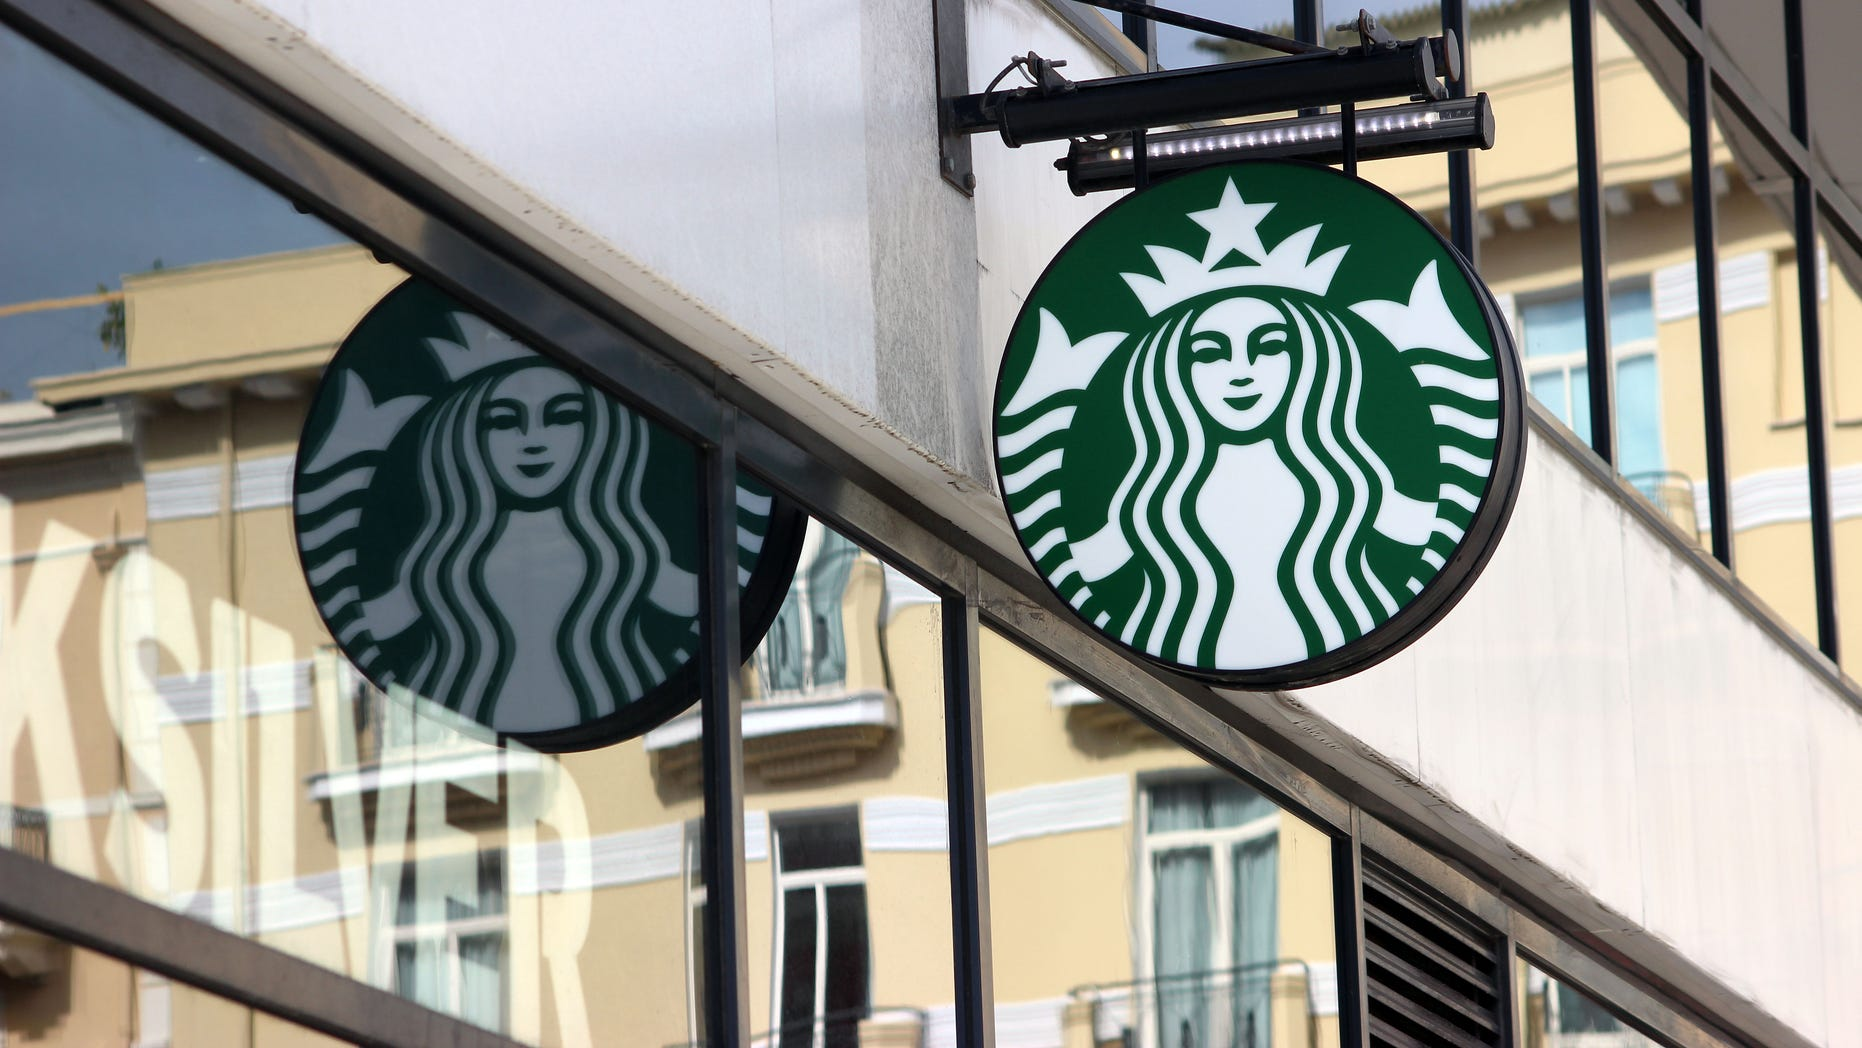 One Texas native is planning to visit every Starbucks location in the world in his lifetime.